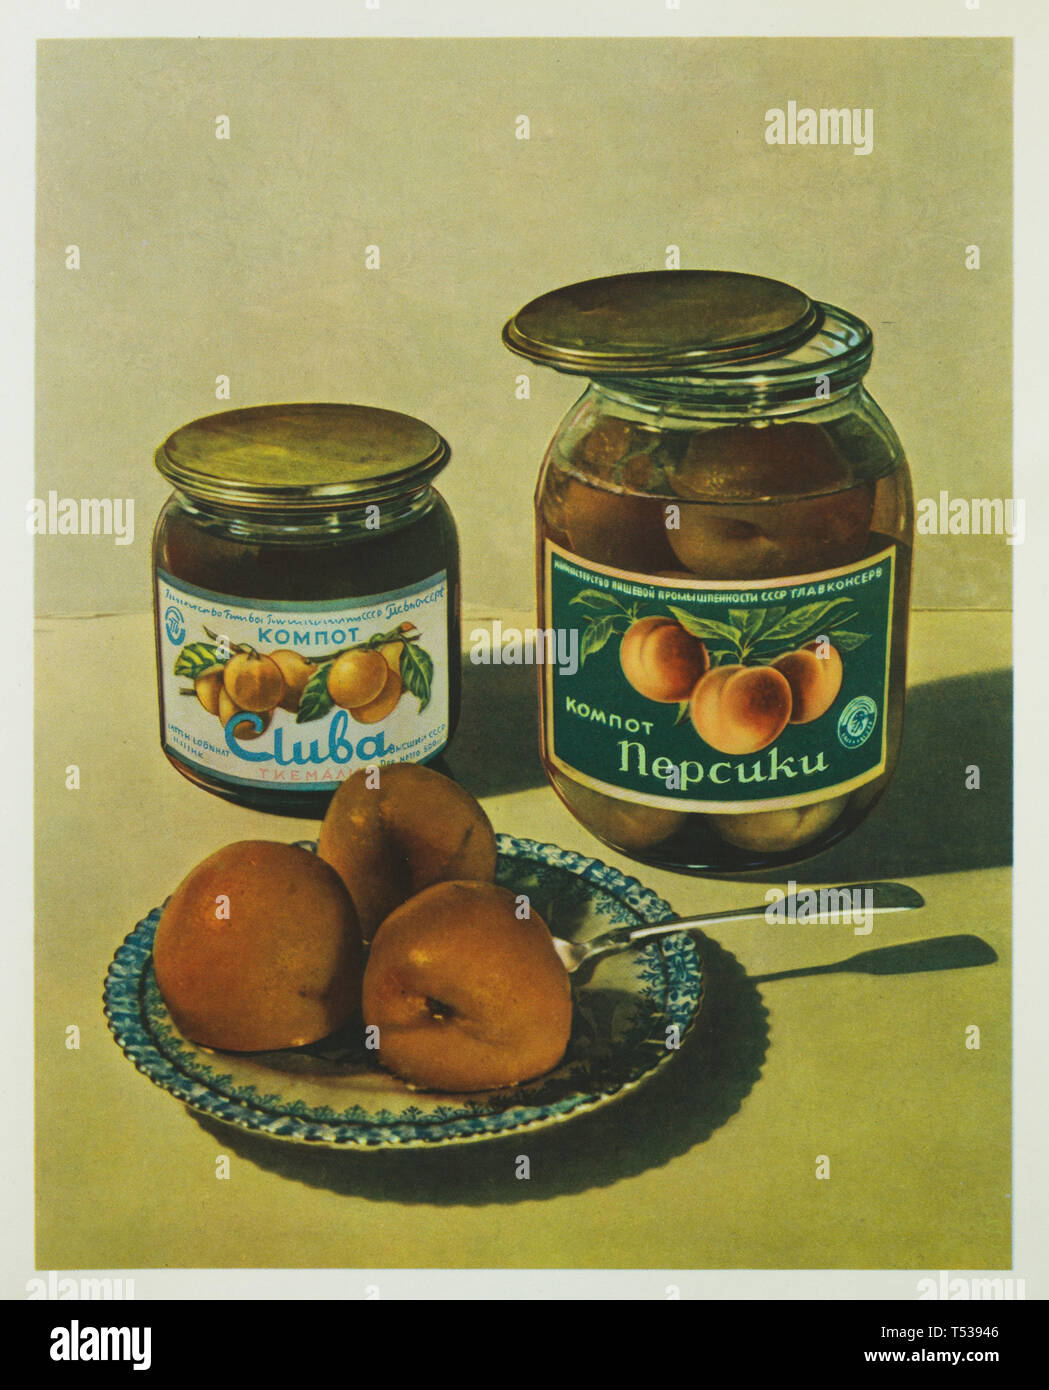 Soviet canned cherry plum kompot and canned peach kompot depicted in the colour illustration in the Book of Tasty and Healthy Food published in the Soviet Union (1953). Stock Photo